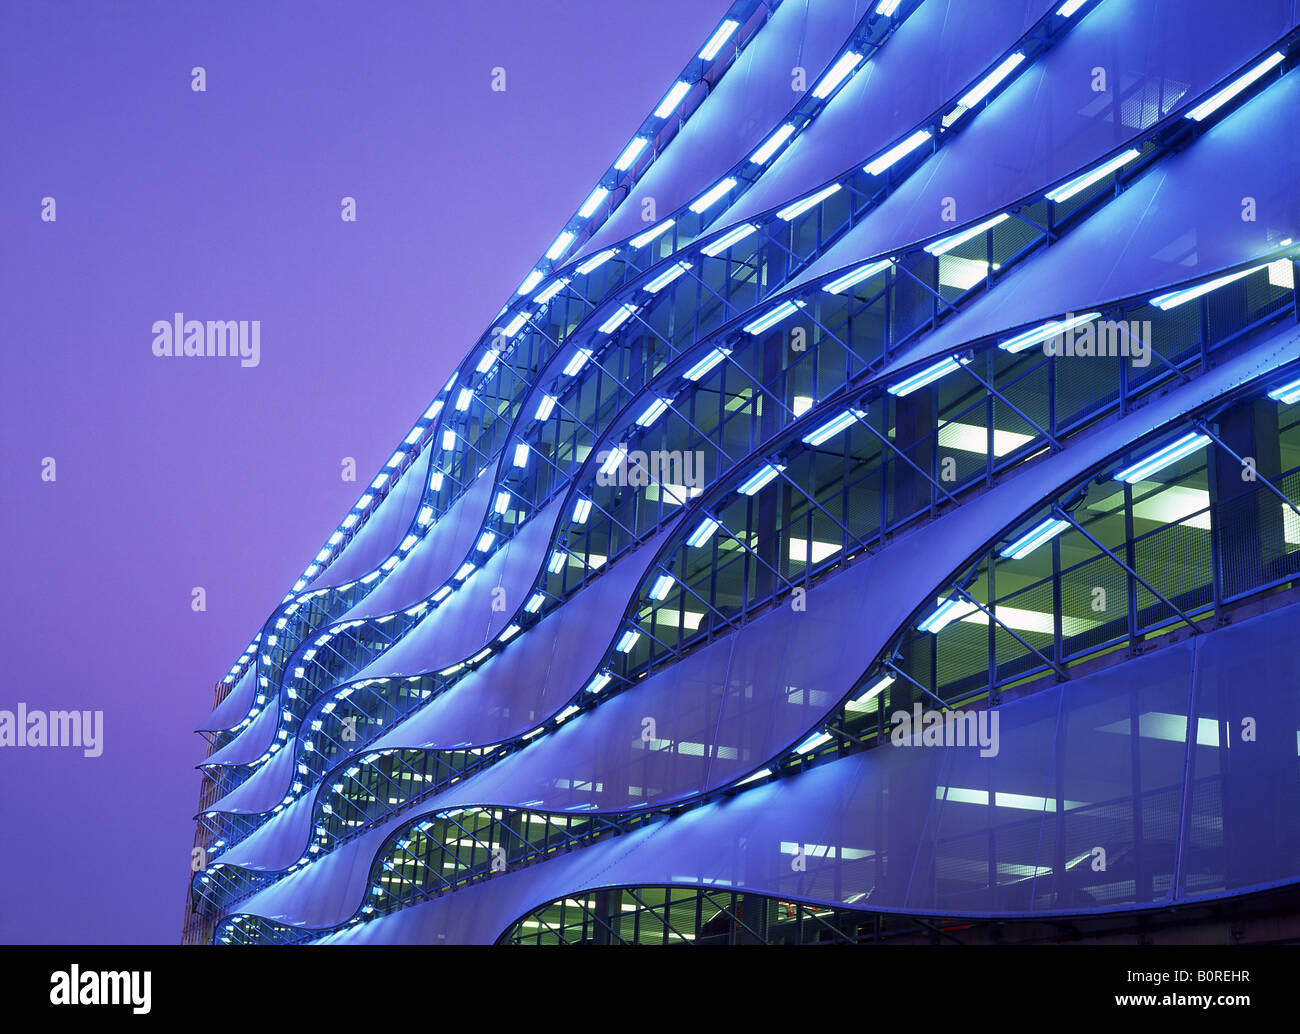 Exterior of multi-storey car park at night Cardiff Bay Cardiff South Wales UK - Stock Image